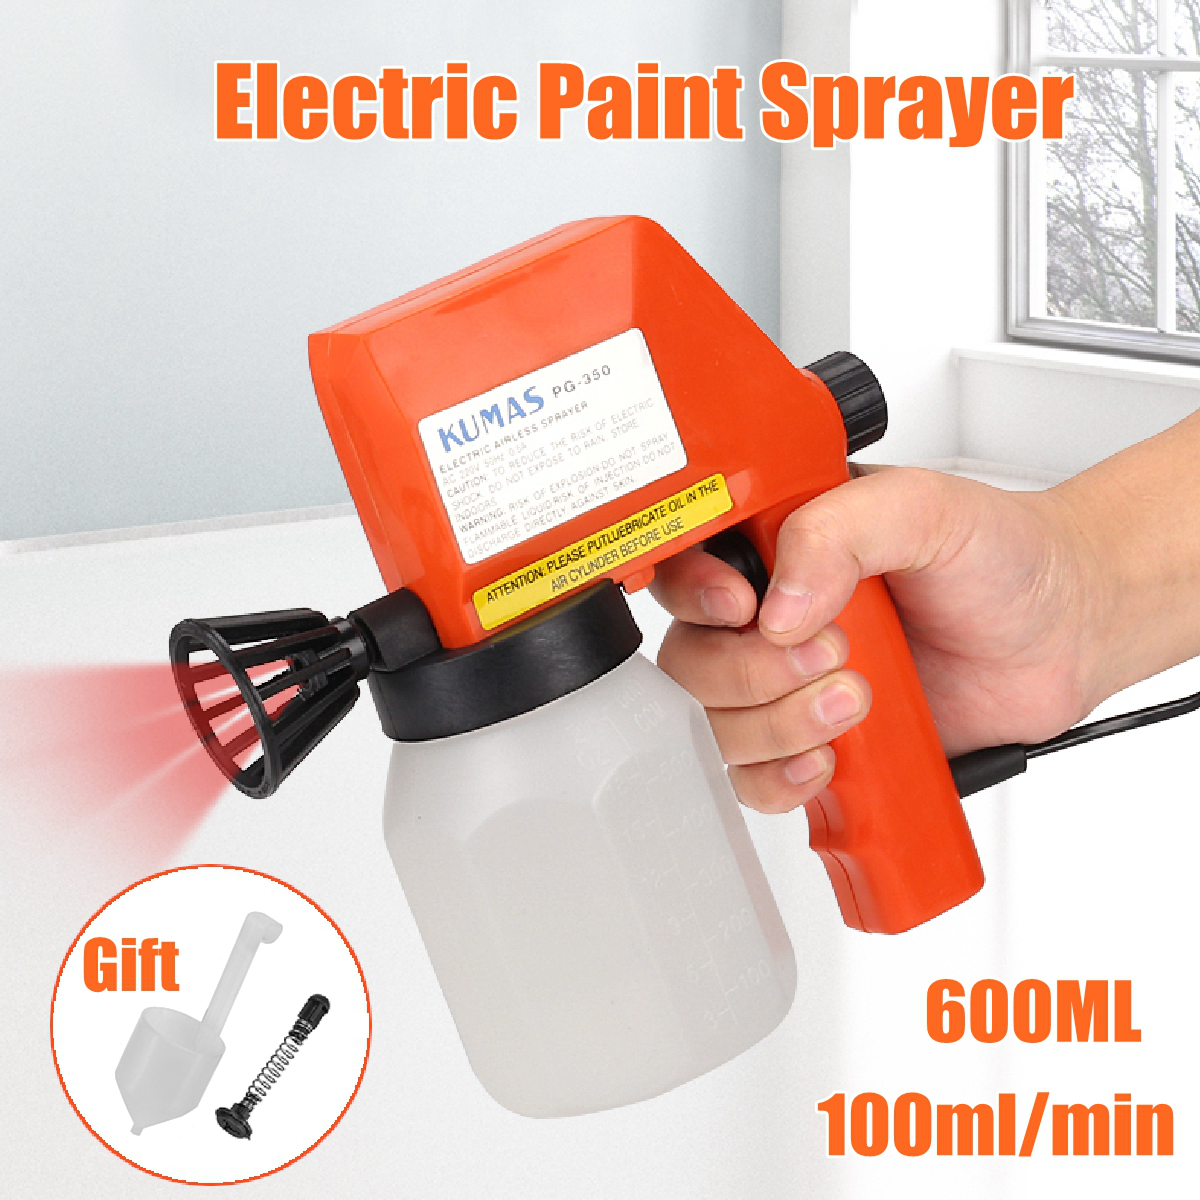 220V High Power Spray Gun Home Electric Paint Sprayer Easy Spraying And Clean Perfect For Beginner